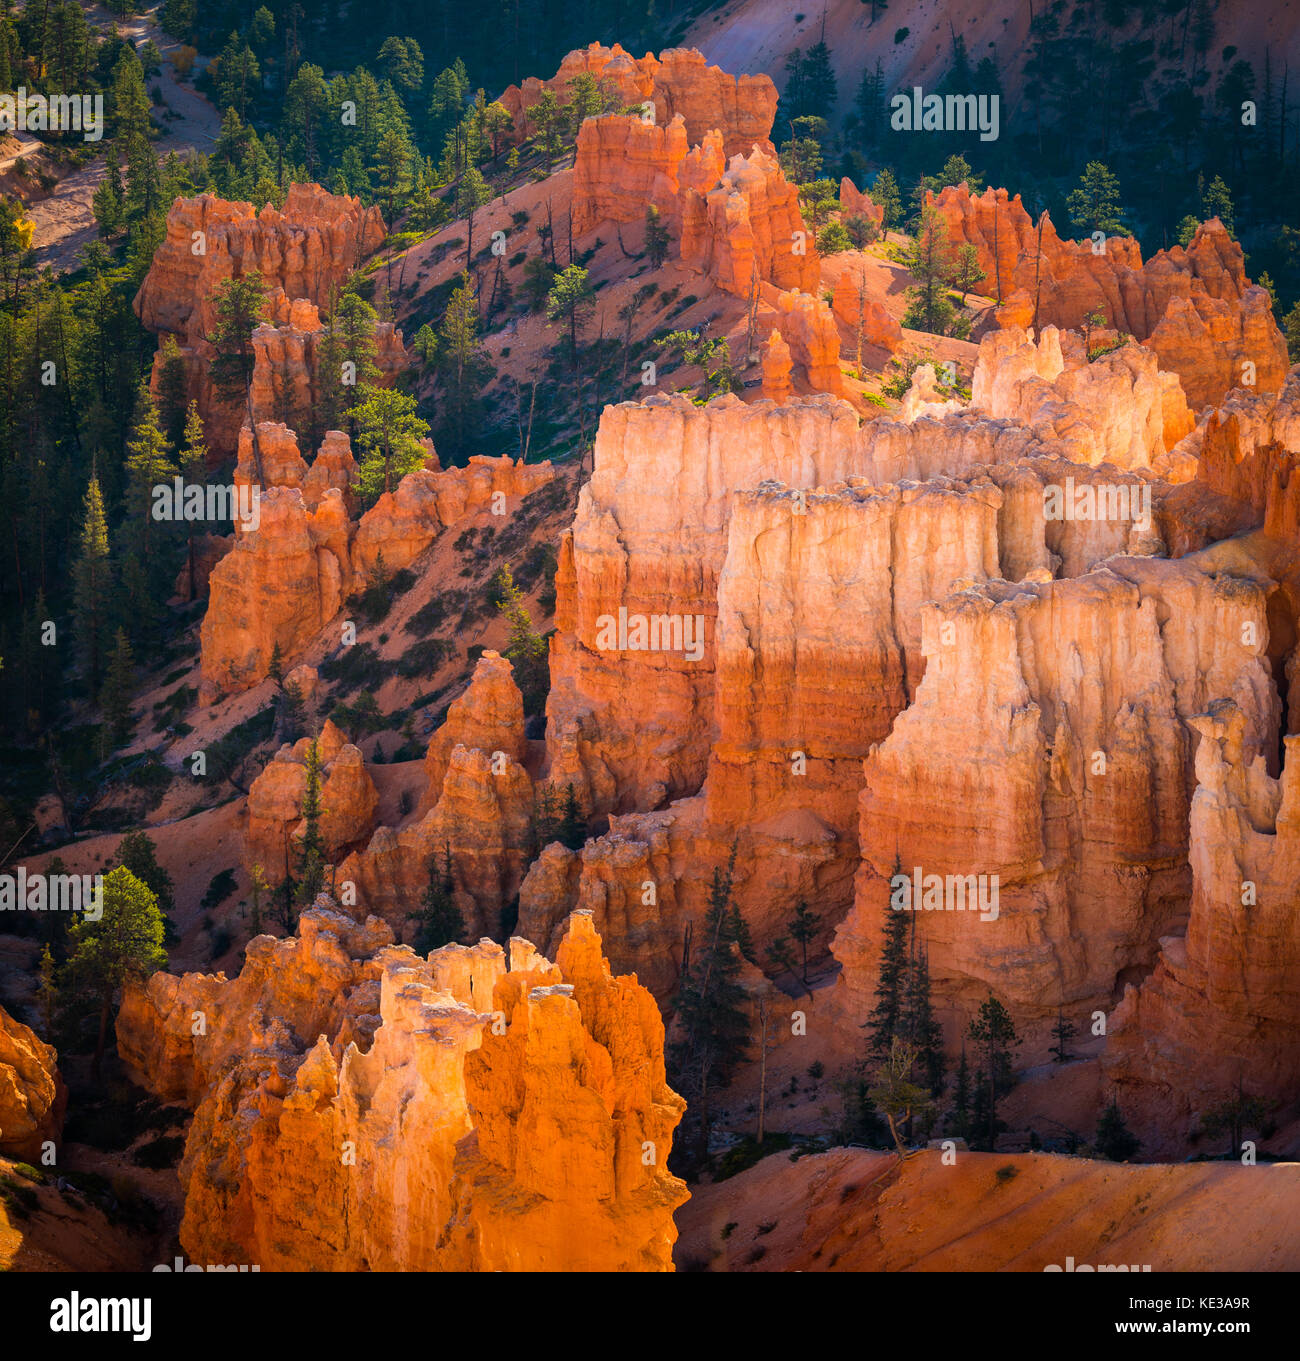 Bryce Canyon National Park, a sprawling reserve in southern Utah, is known for crimson-colored hoodoos, which are - Stock Image